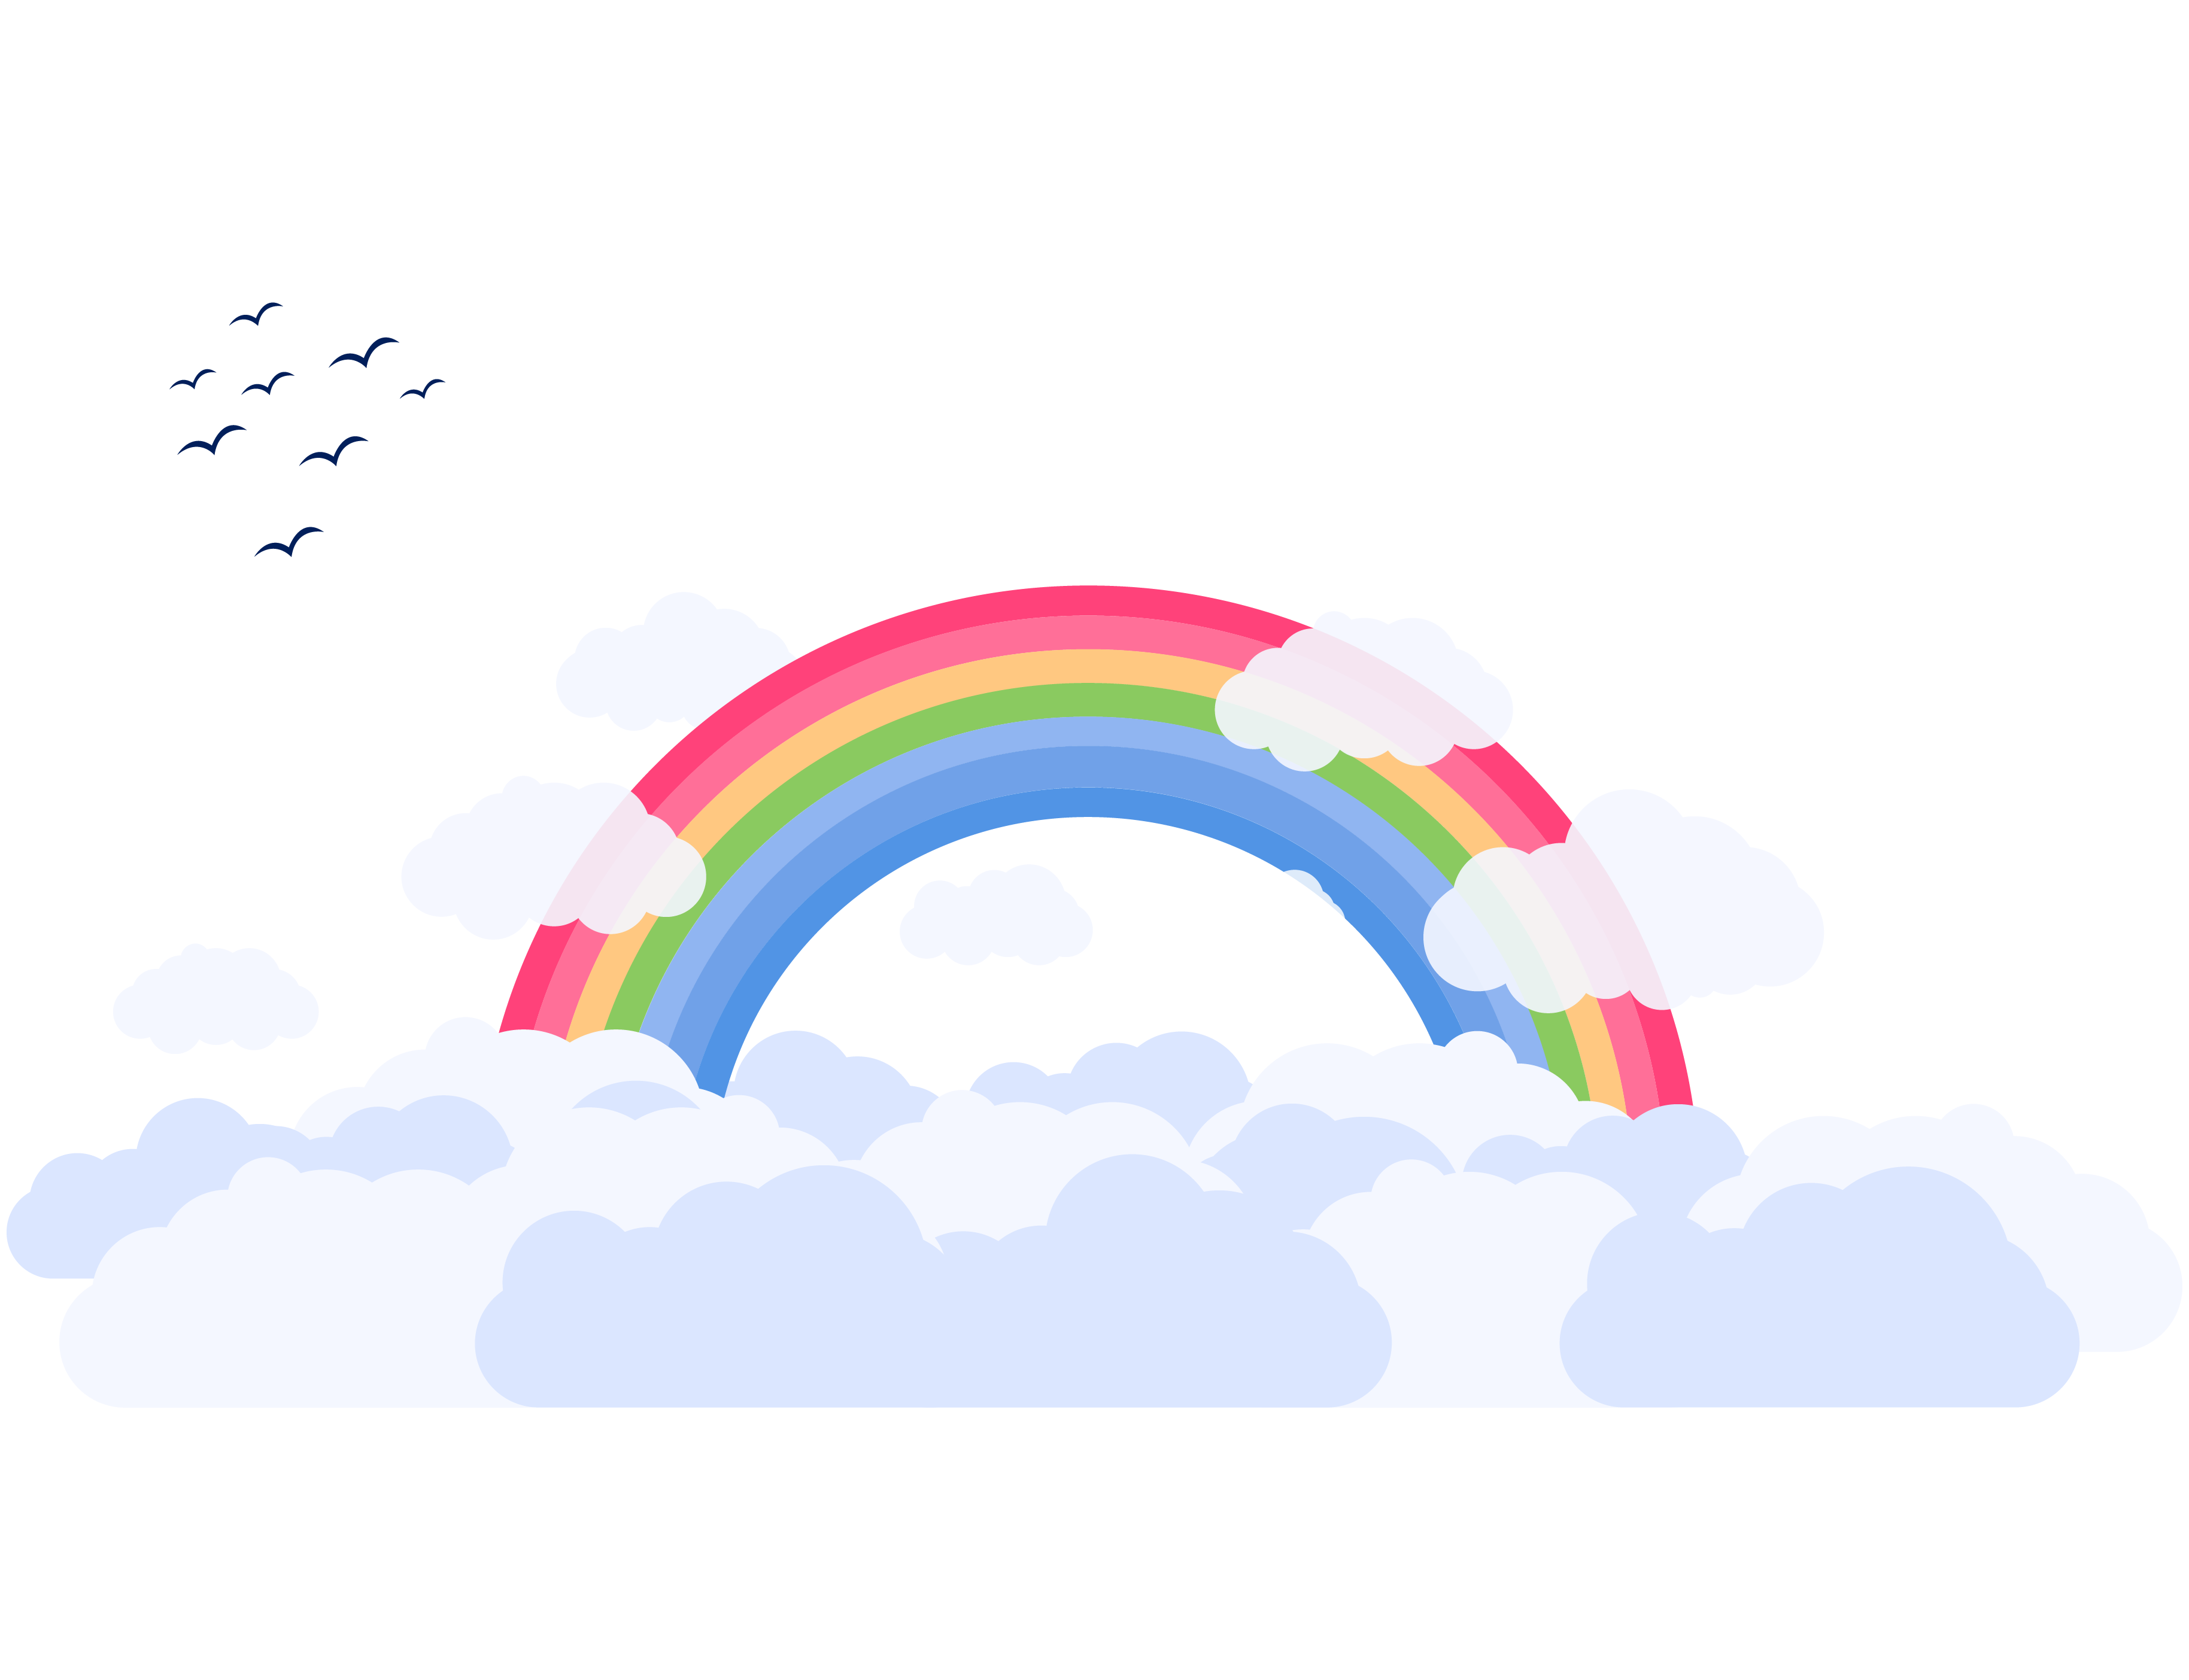 clouds and rainbow illustration.